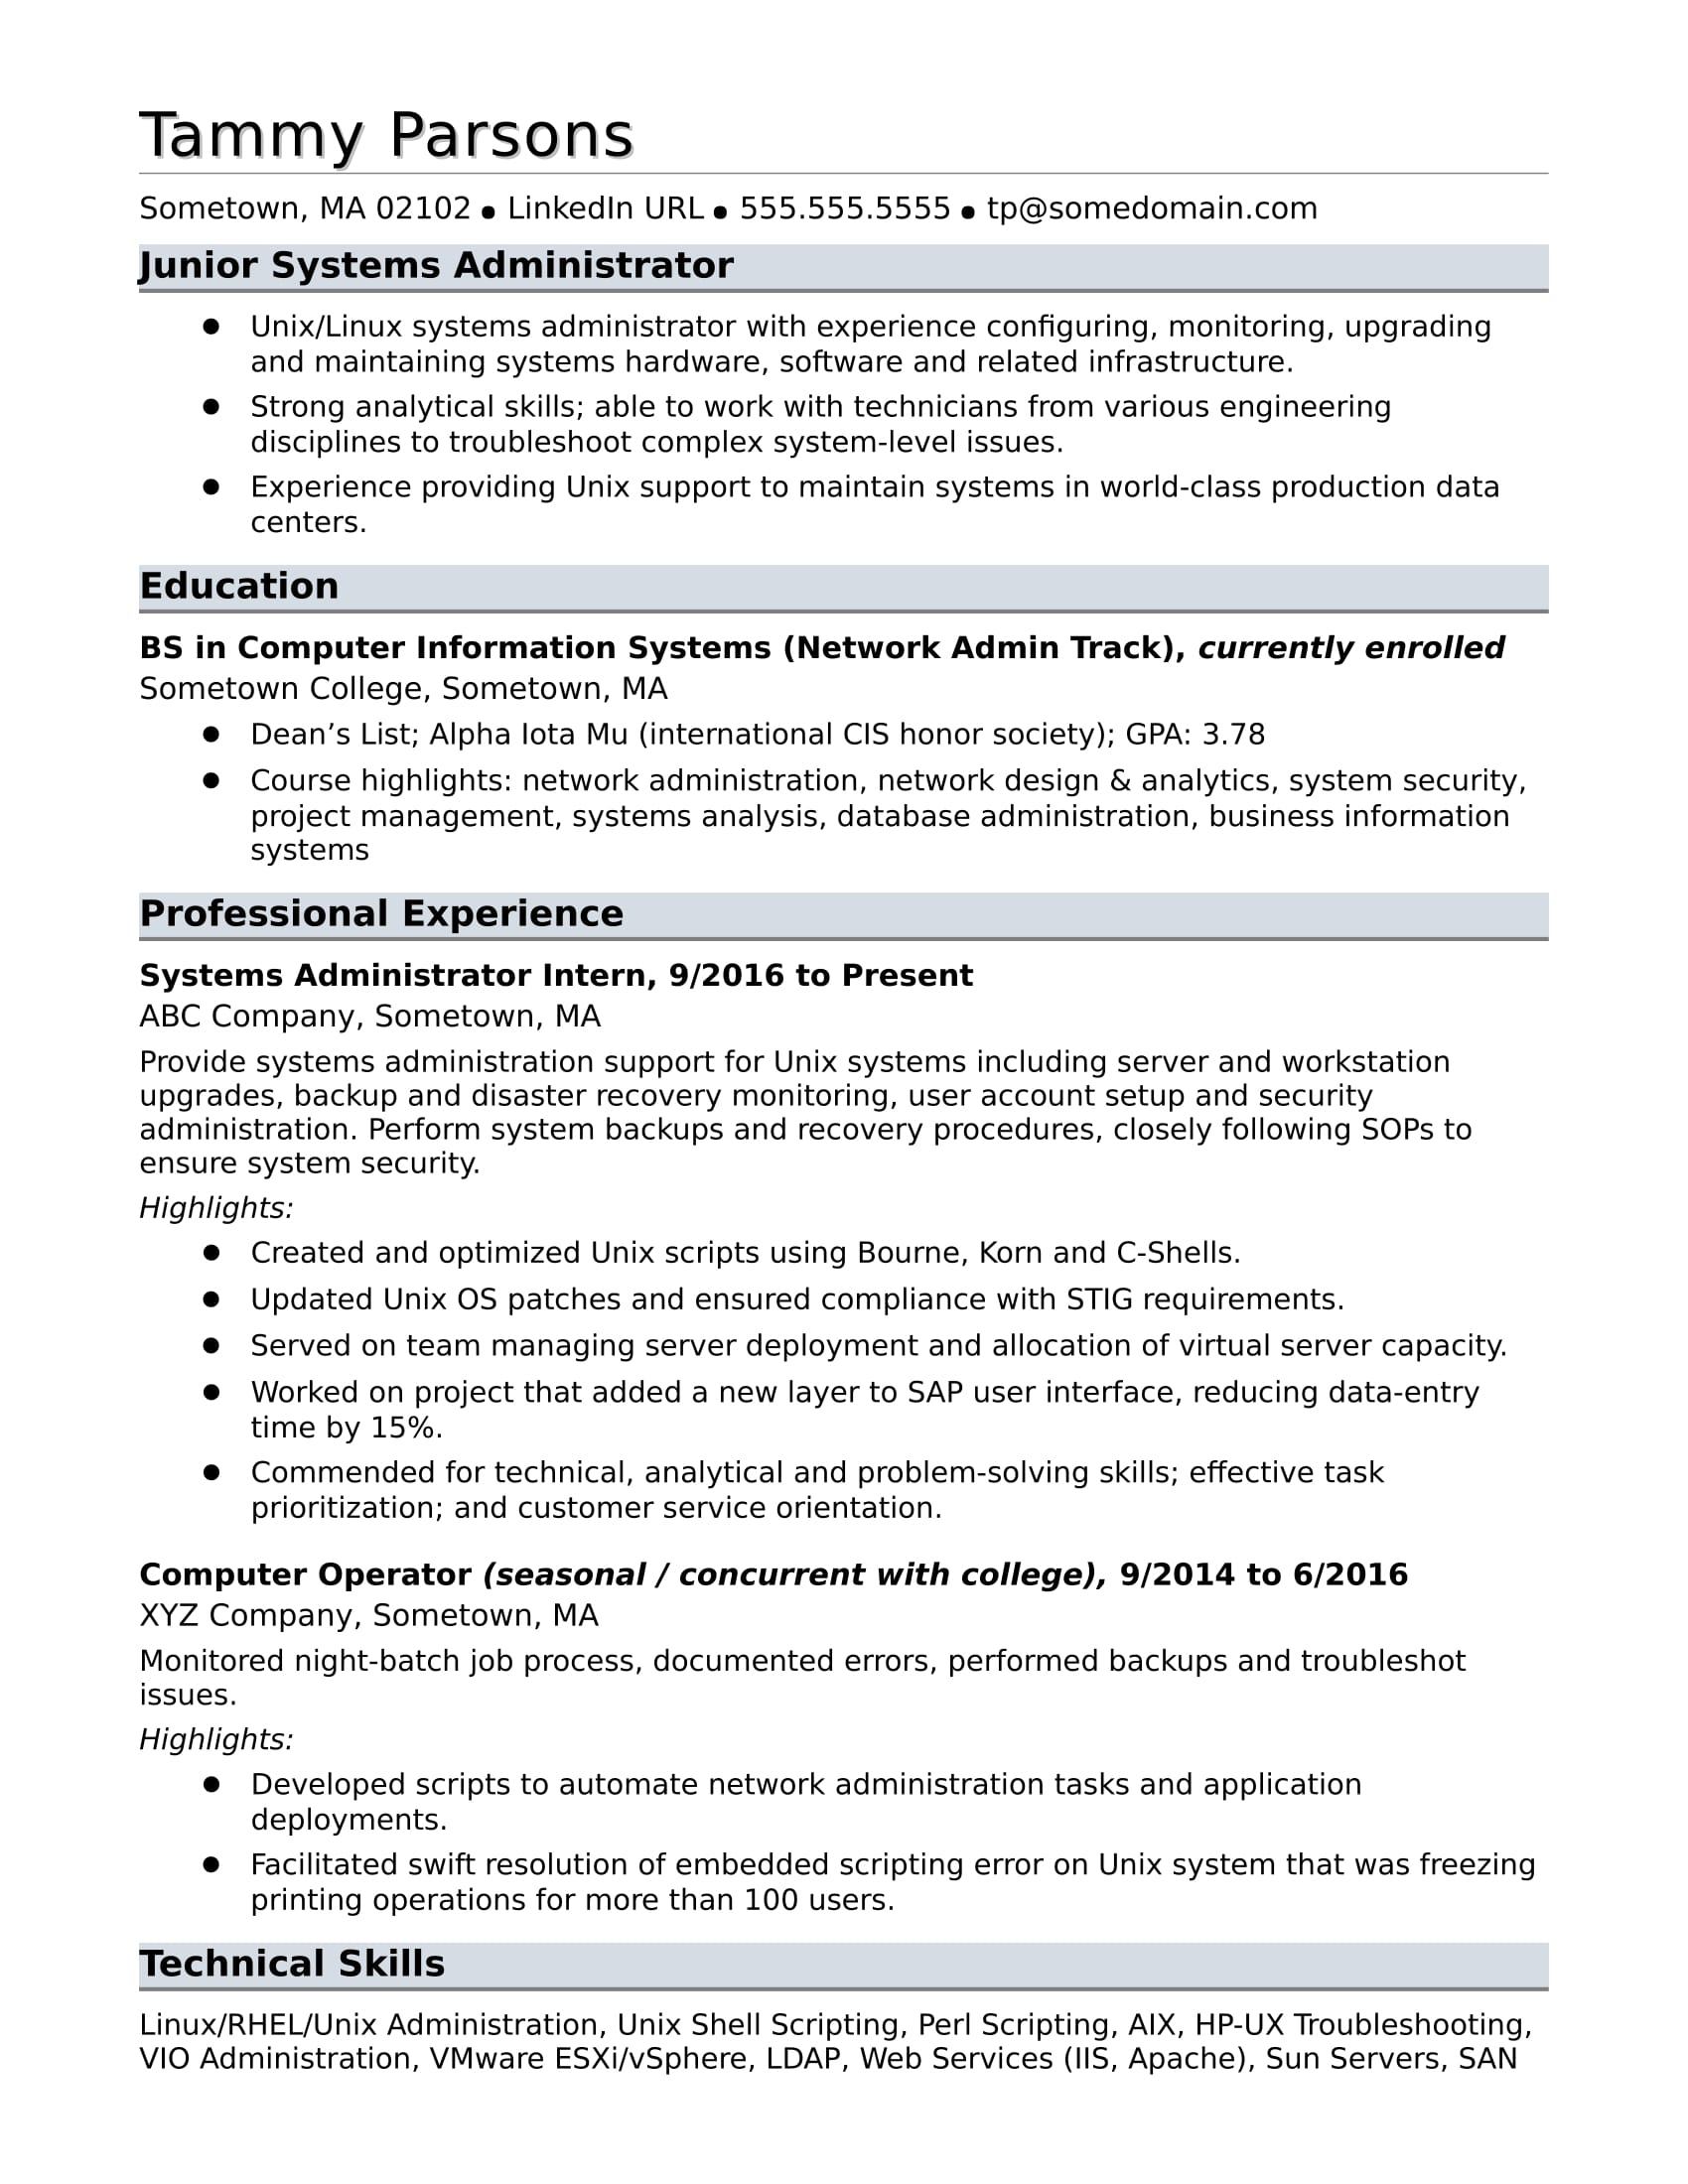 sample resume for an entry level systems administrator monster web services objective Resume Web Services Resume Sample